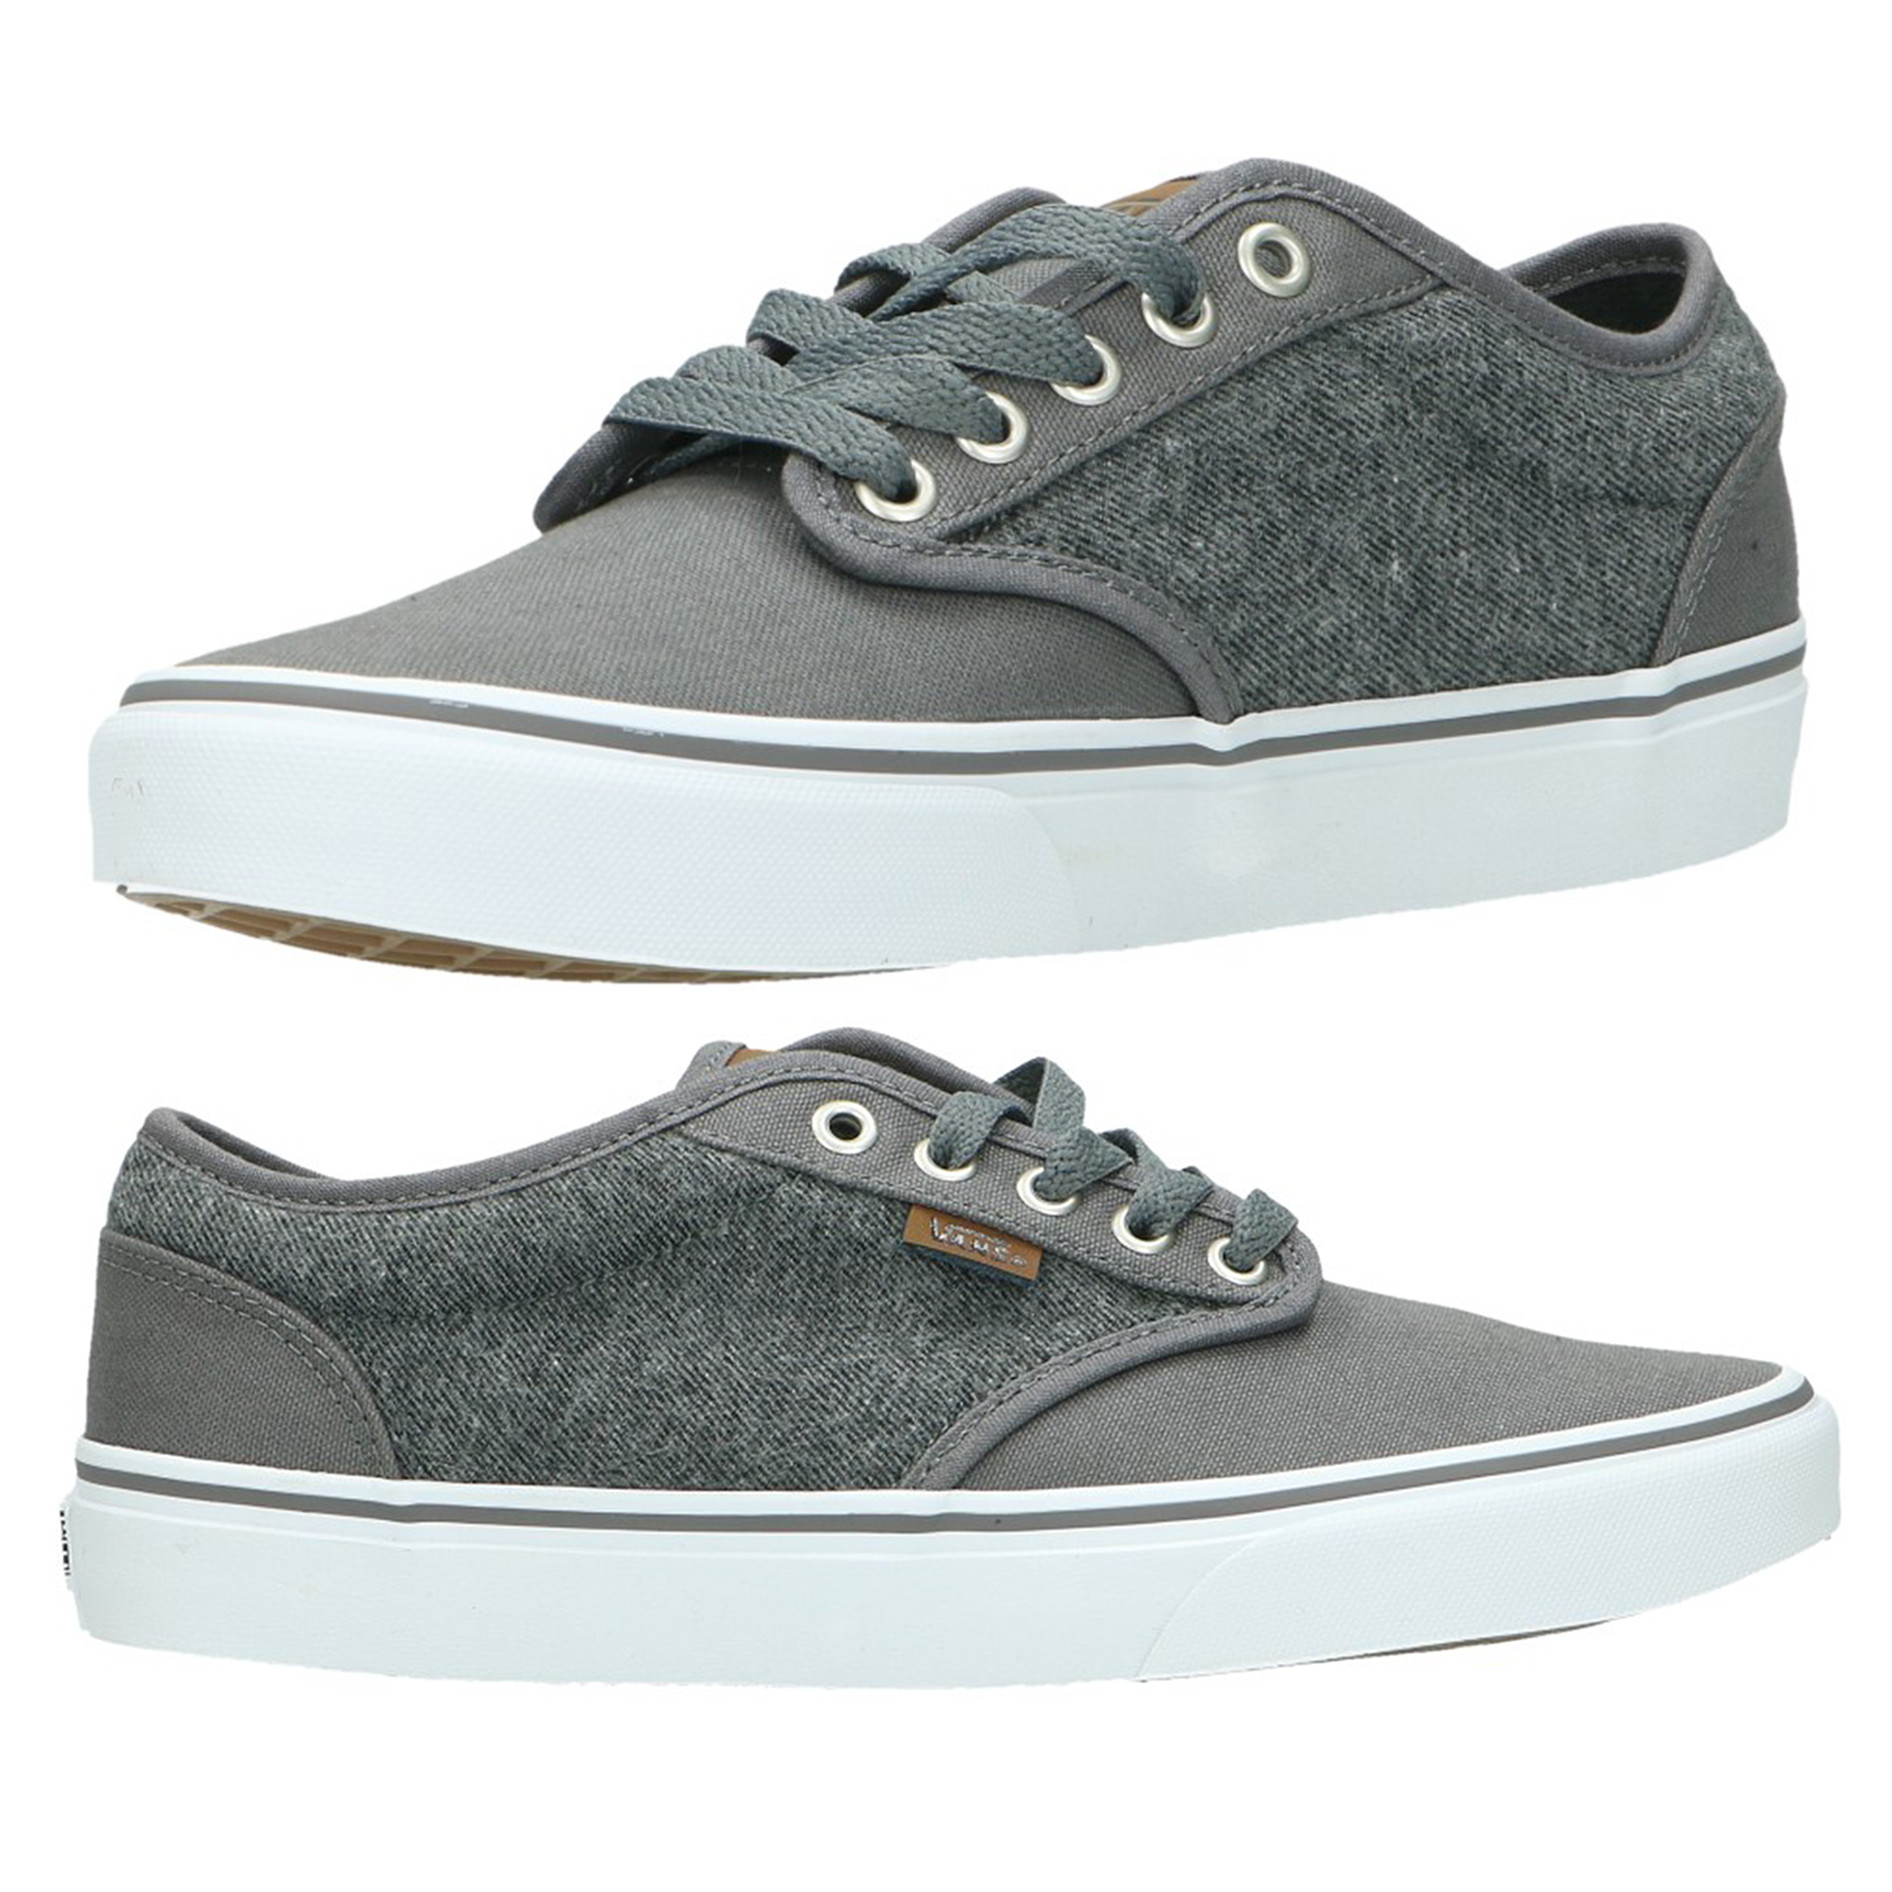 ae2caf2749 Vans Men s Atwood C L Canvas Shoes Trainers Pewter White